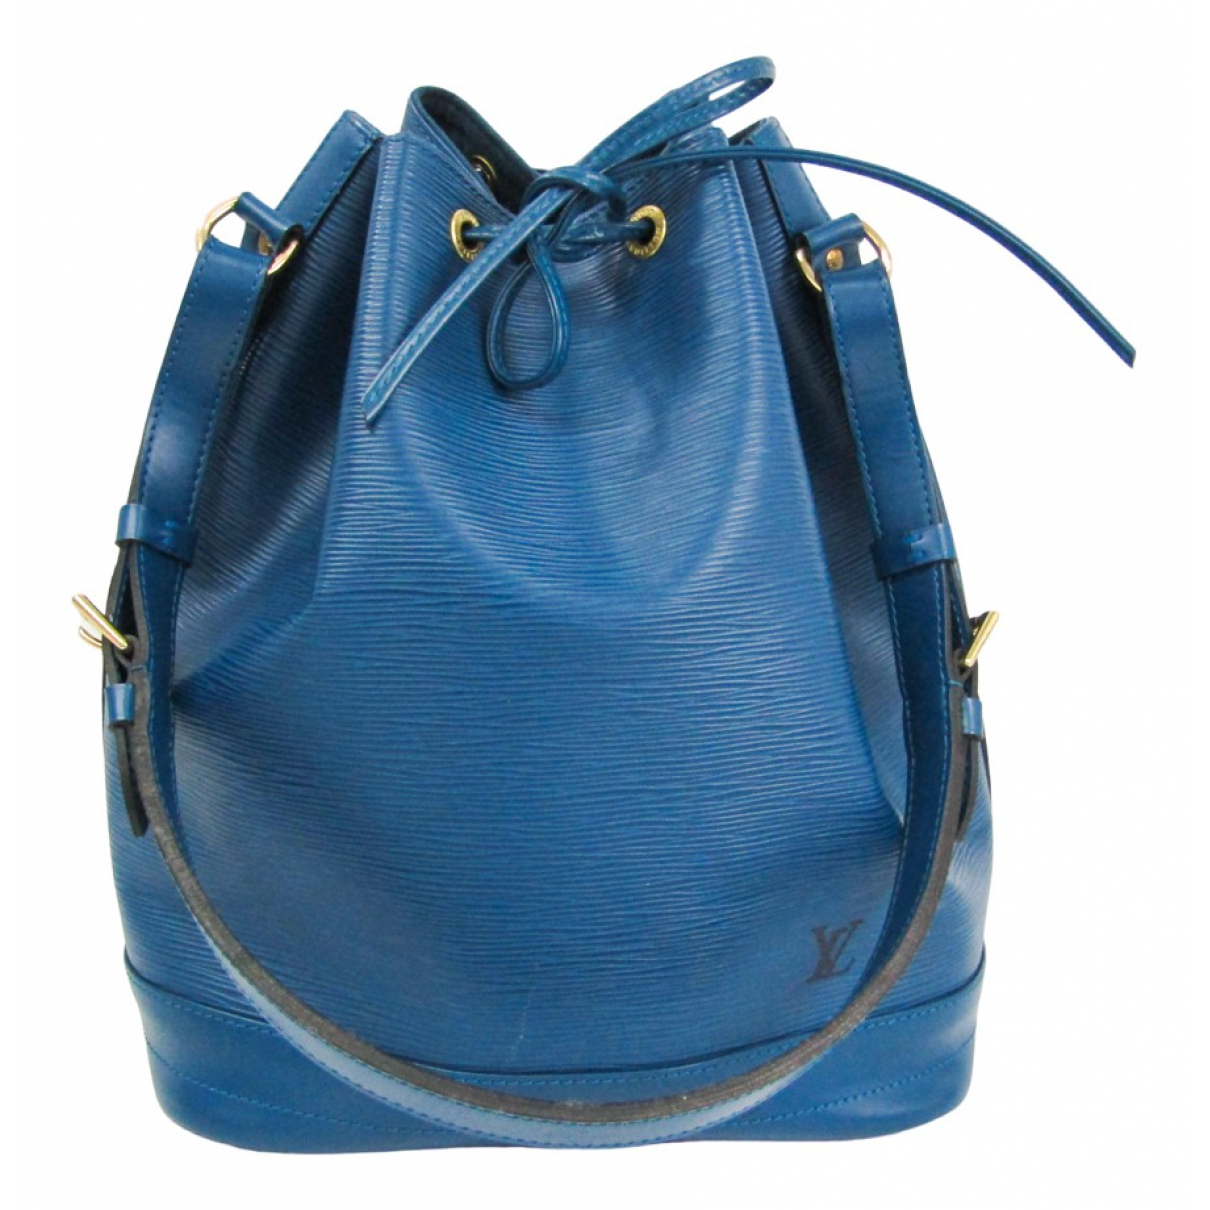 Louis Vuitton Noé Blue Leather handbag for Women N